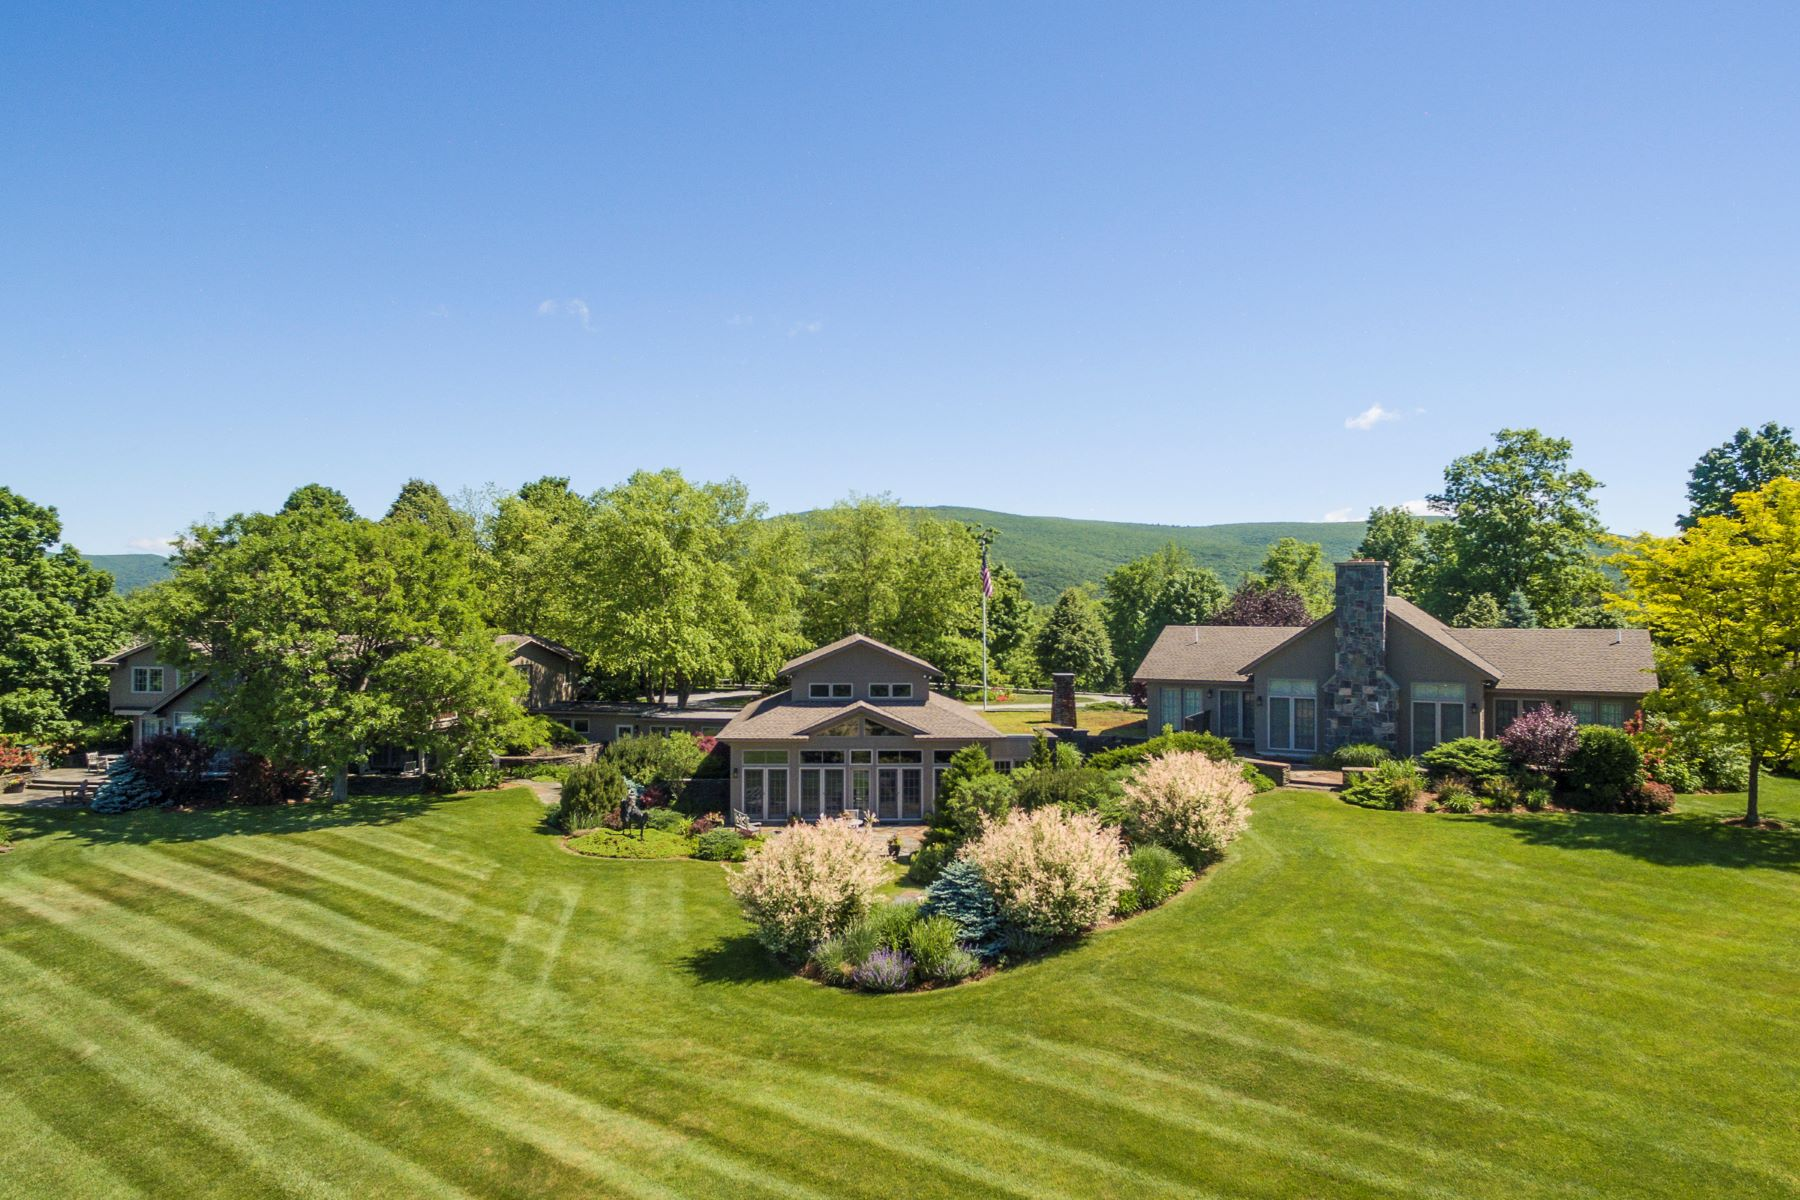 Maison unifamiliale pour l Vente à Live your dream in this stunning 11.7 acre Country Estate with Indoor Pool and T 465 Stratton Rd Williamstown, Massachusetts 01267 États-Unis